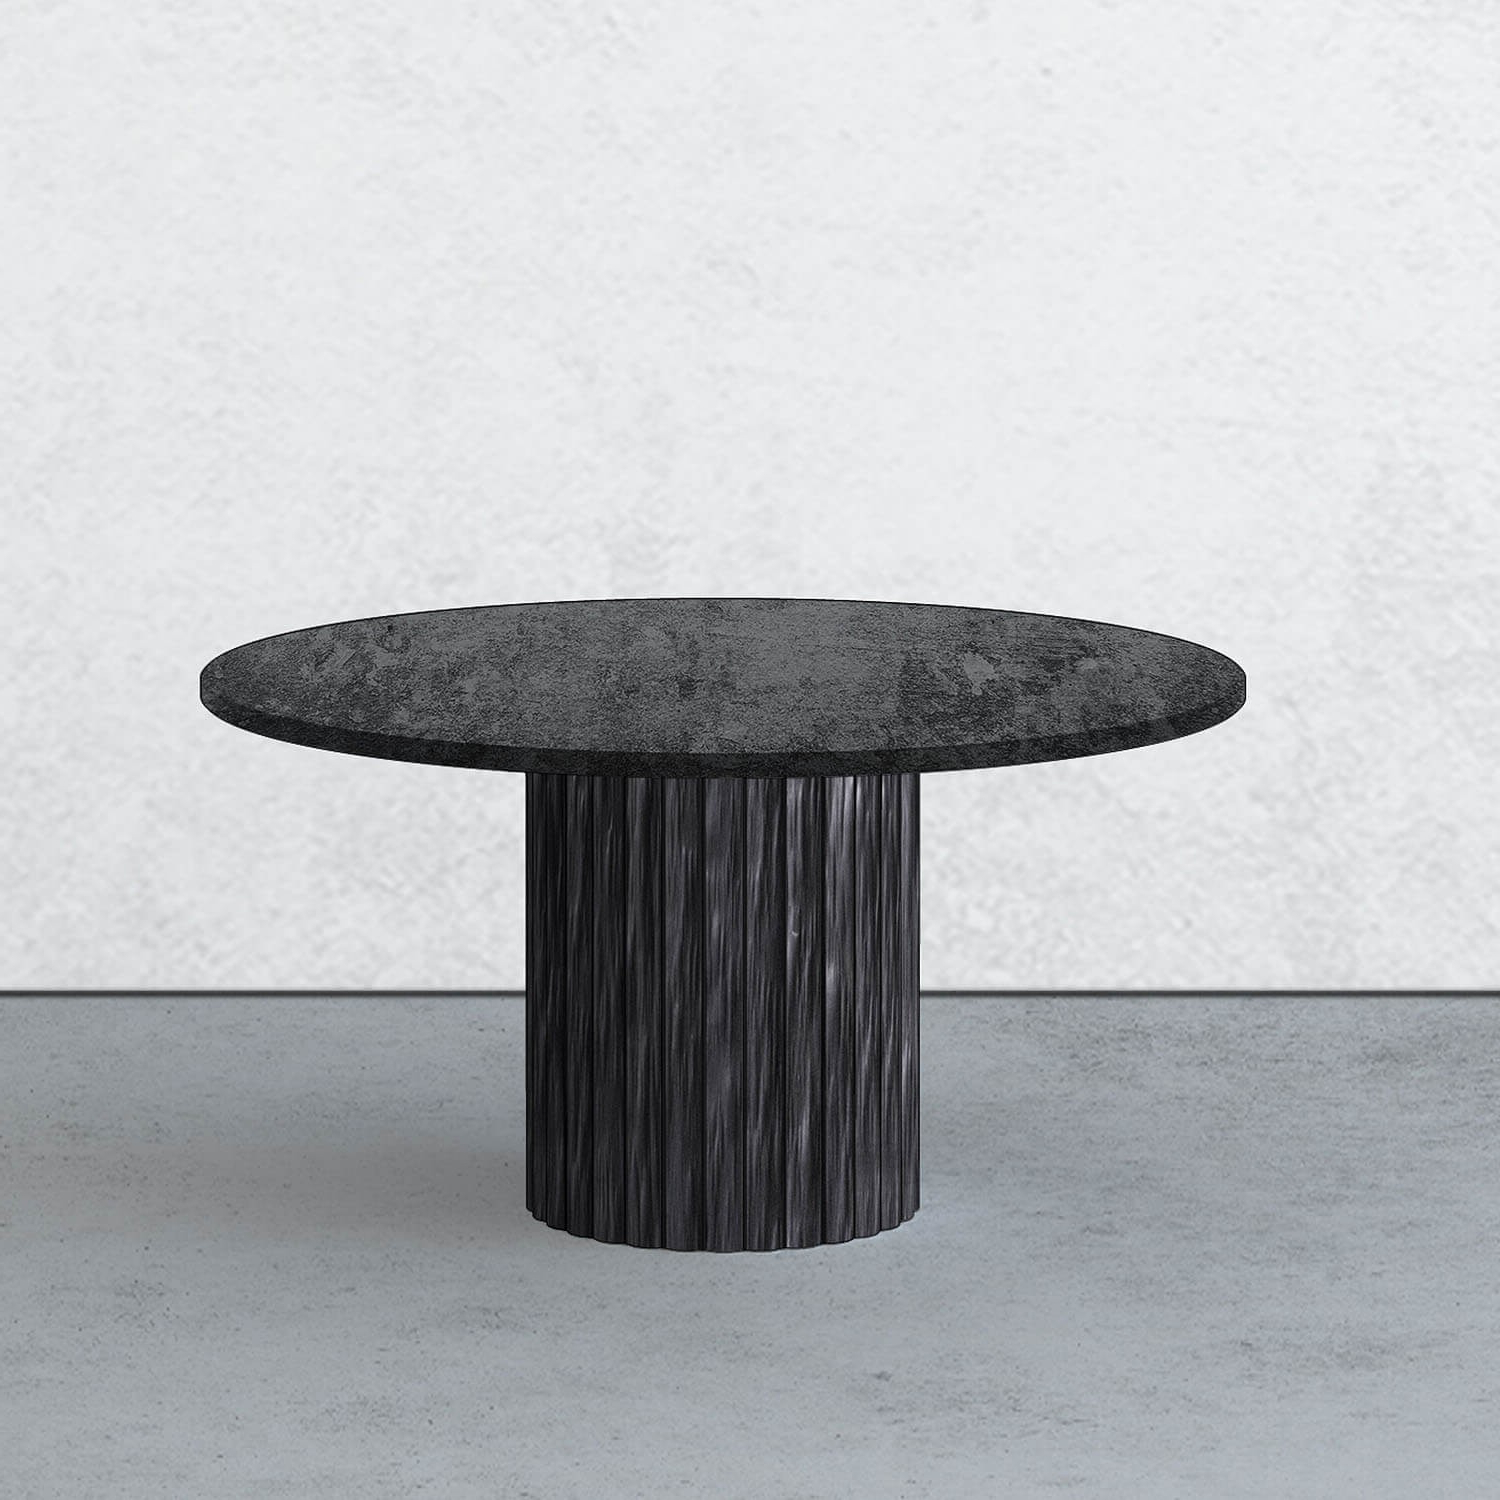 Kooku In Current Neo Round Dining Tables (View 14 of 30)